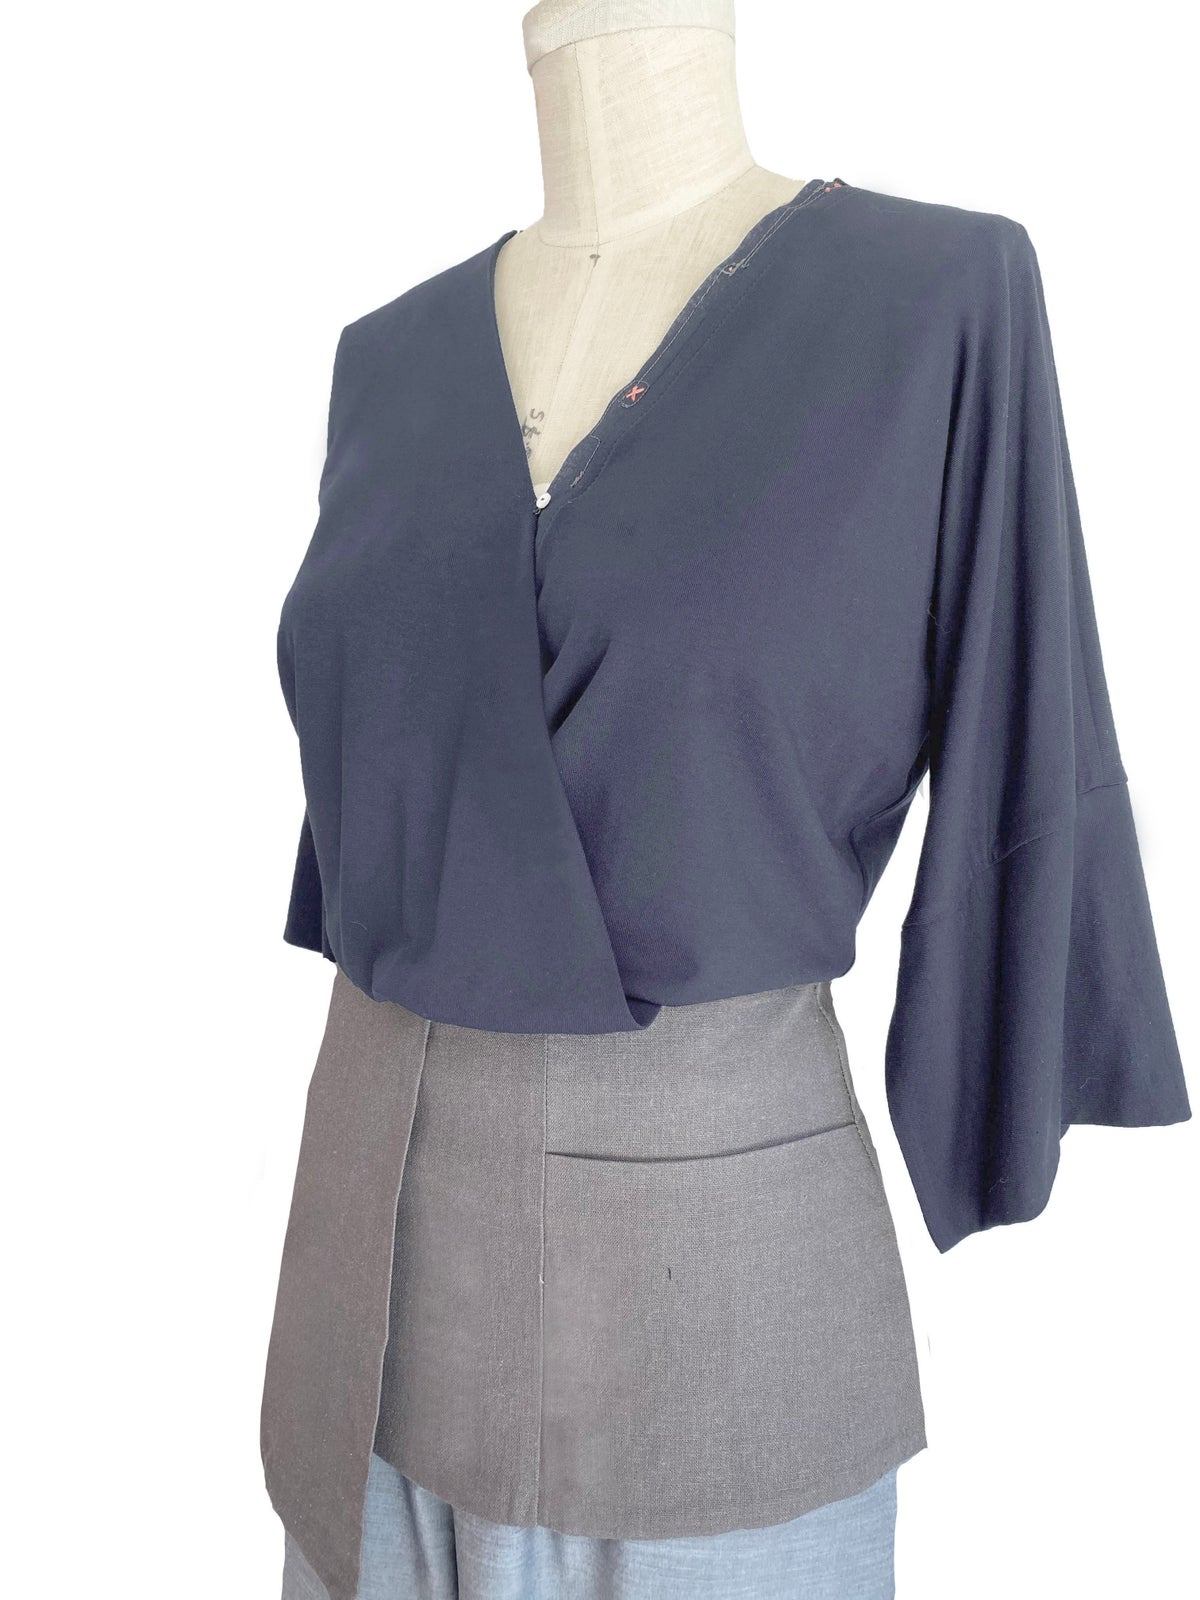 Image of Asher top in steel